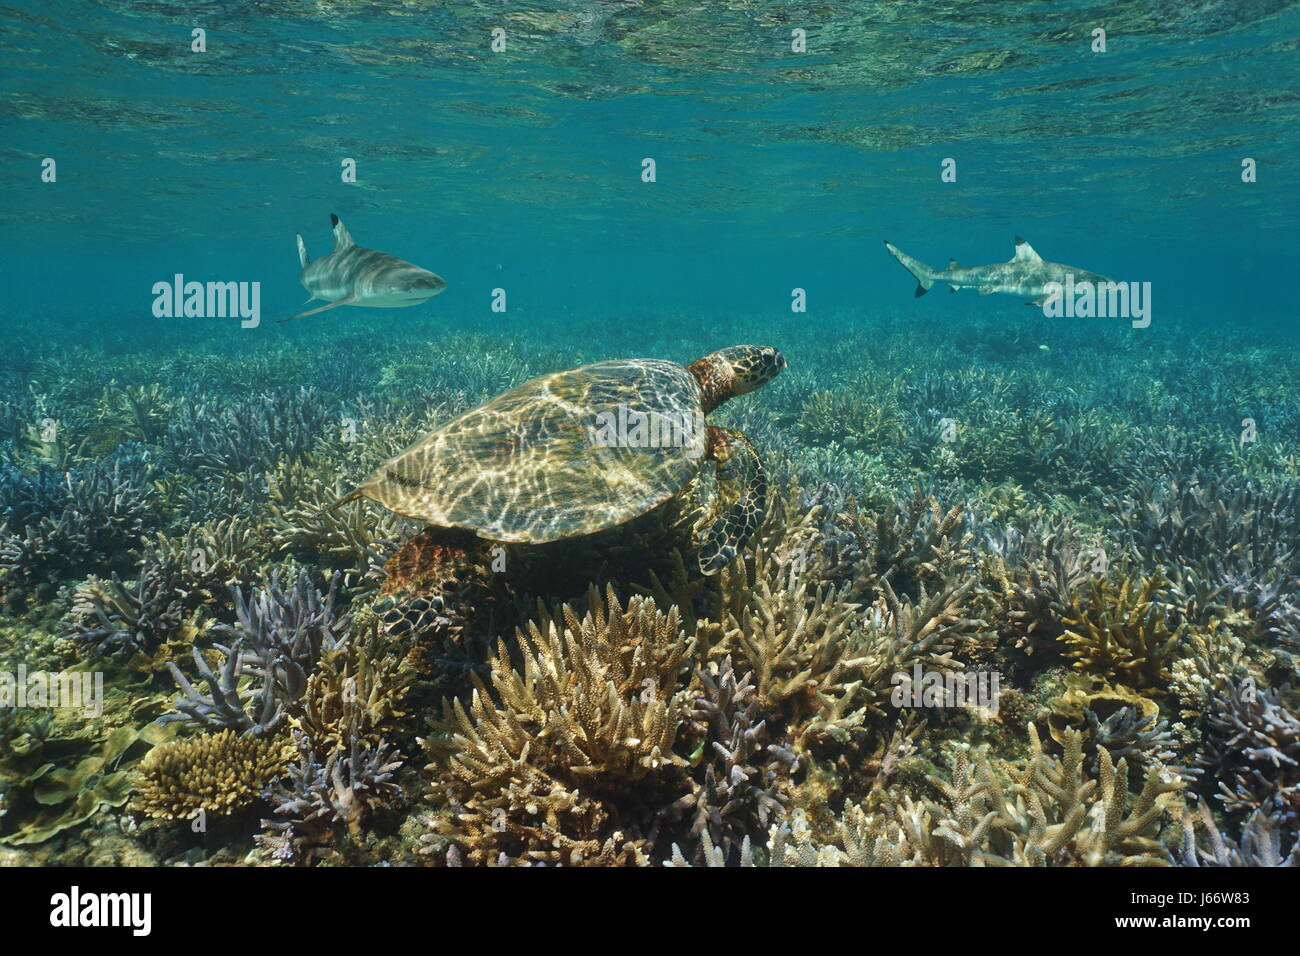 Shallow coral reef underwater with an hawksbill sea turtle and blacktip reef sharks, south Pacific ocean, New Caledonia Stock Photo